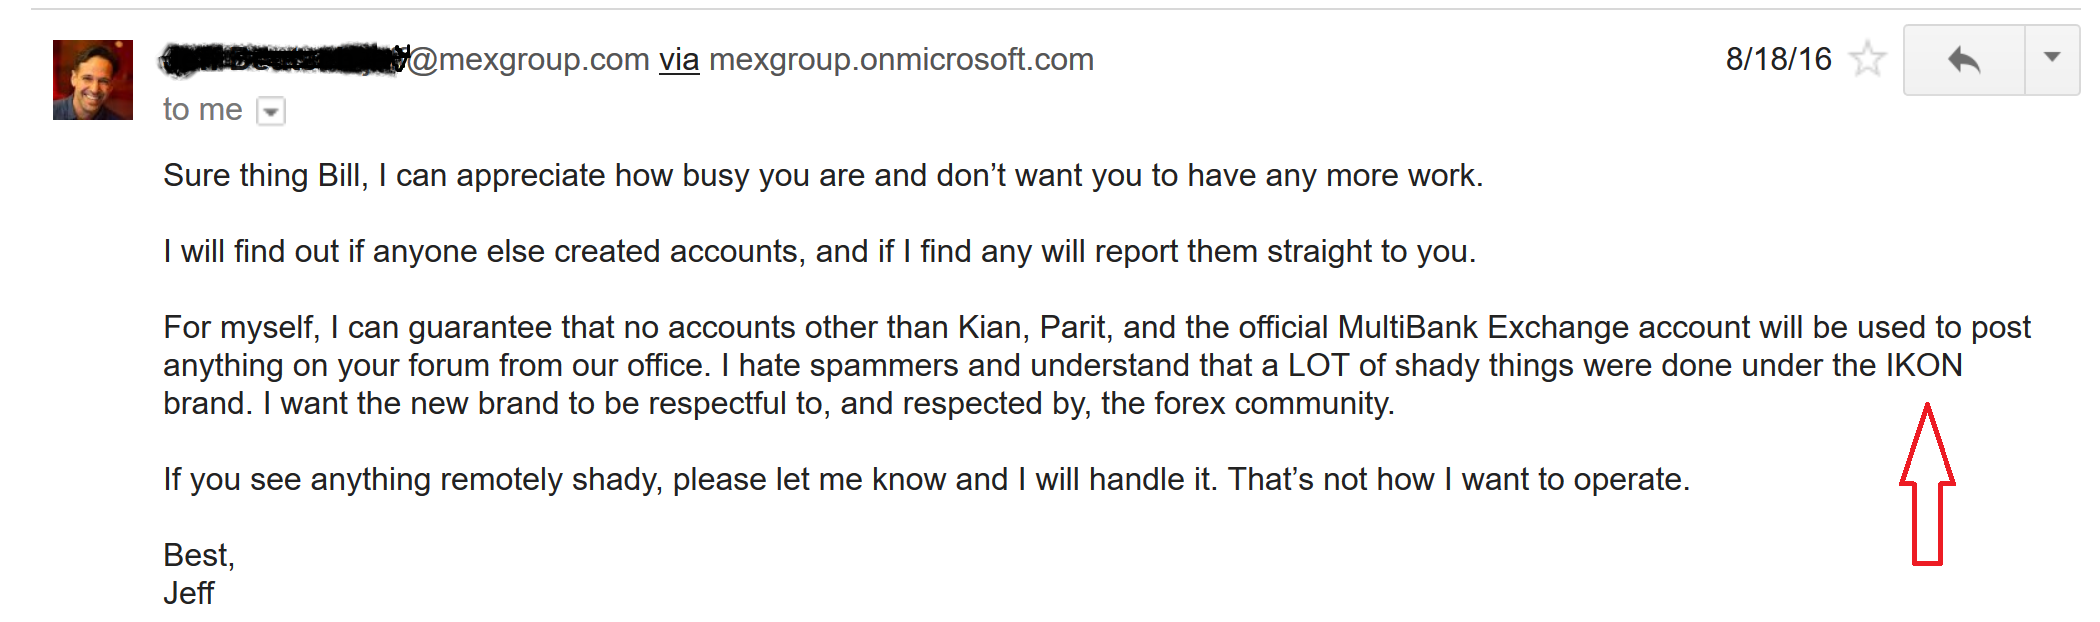 MEX-Evidence-Email-Jeff.